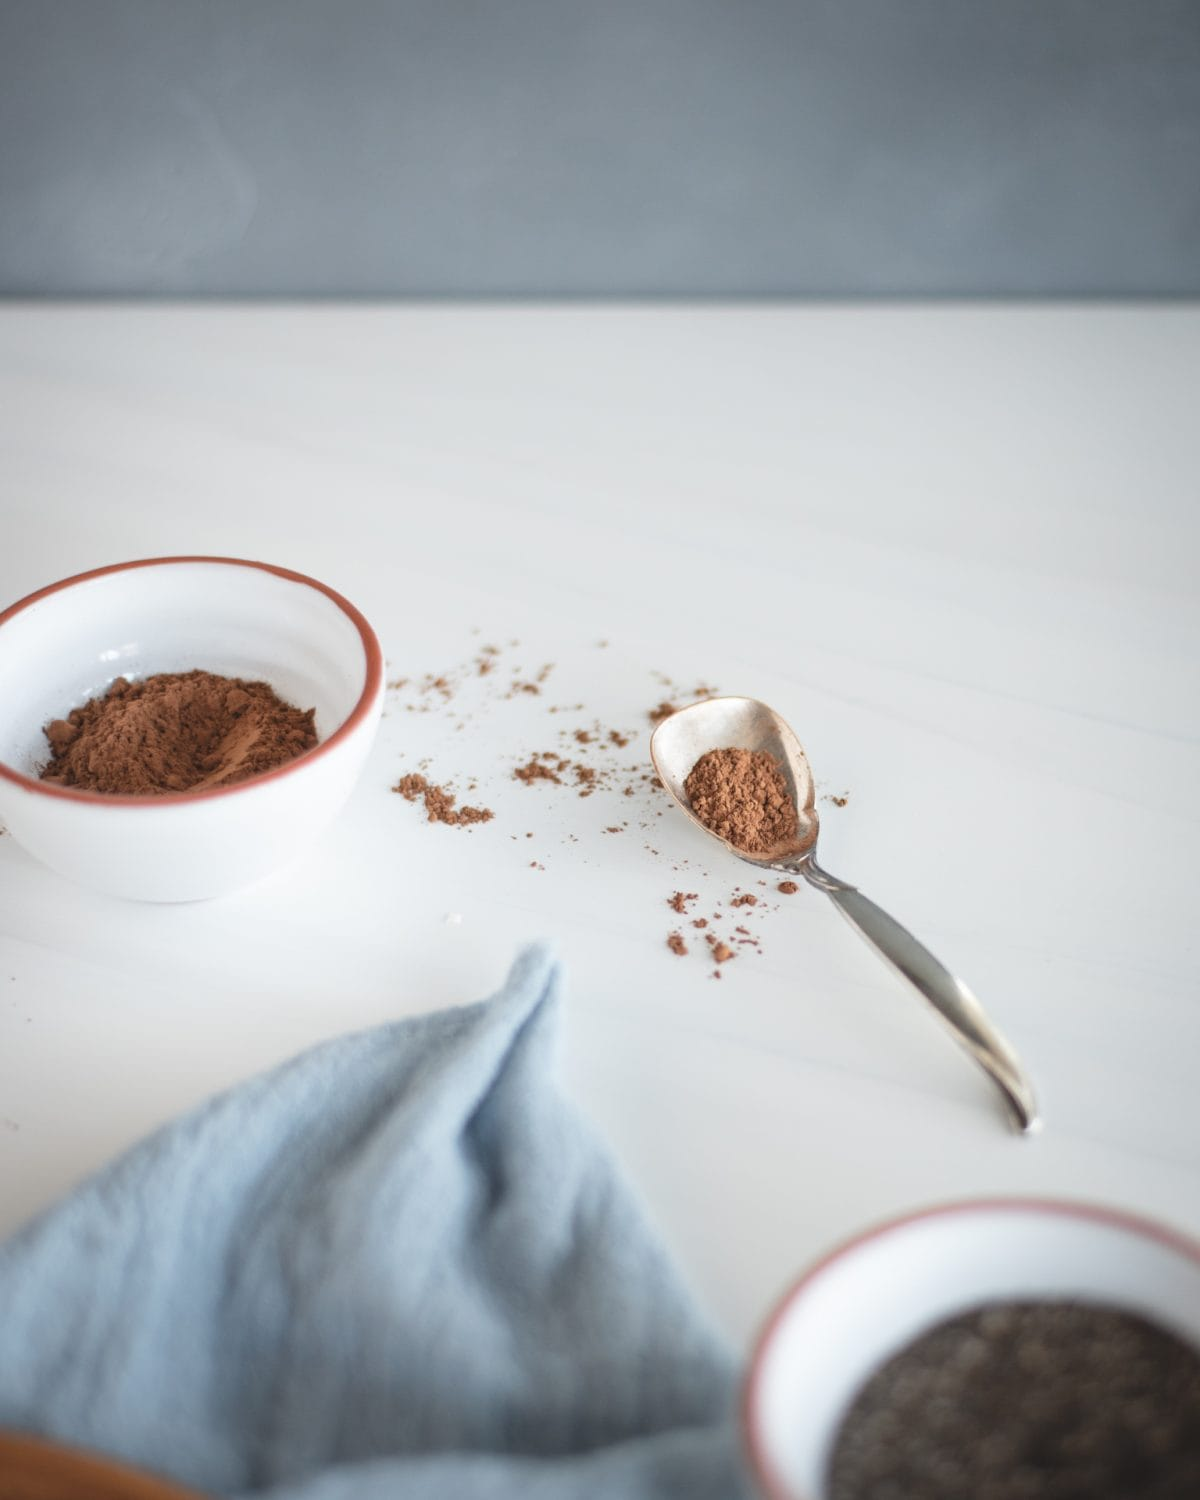 cocoa powder in a white bowl